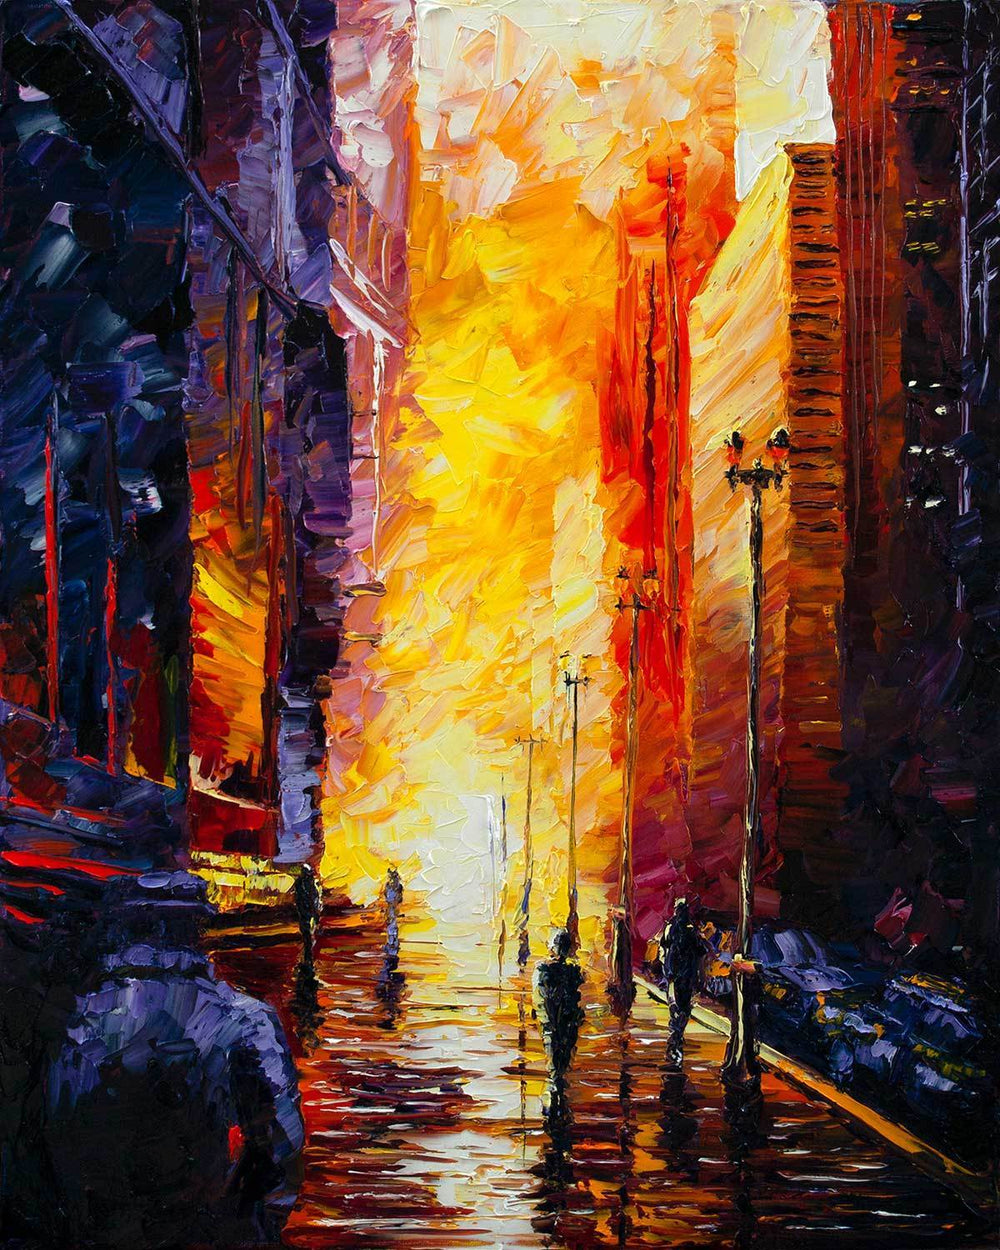 Cityscape Wall Art by Nelson Makes Art